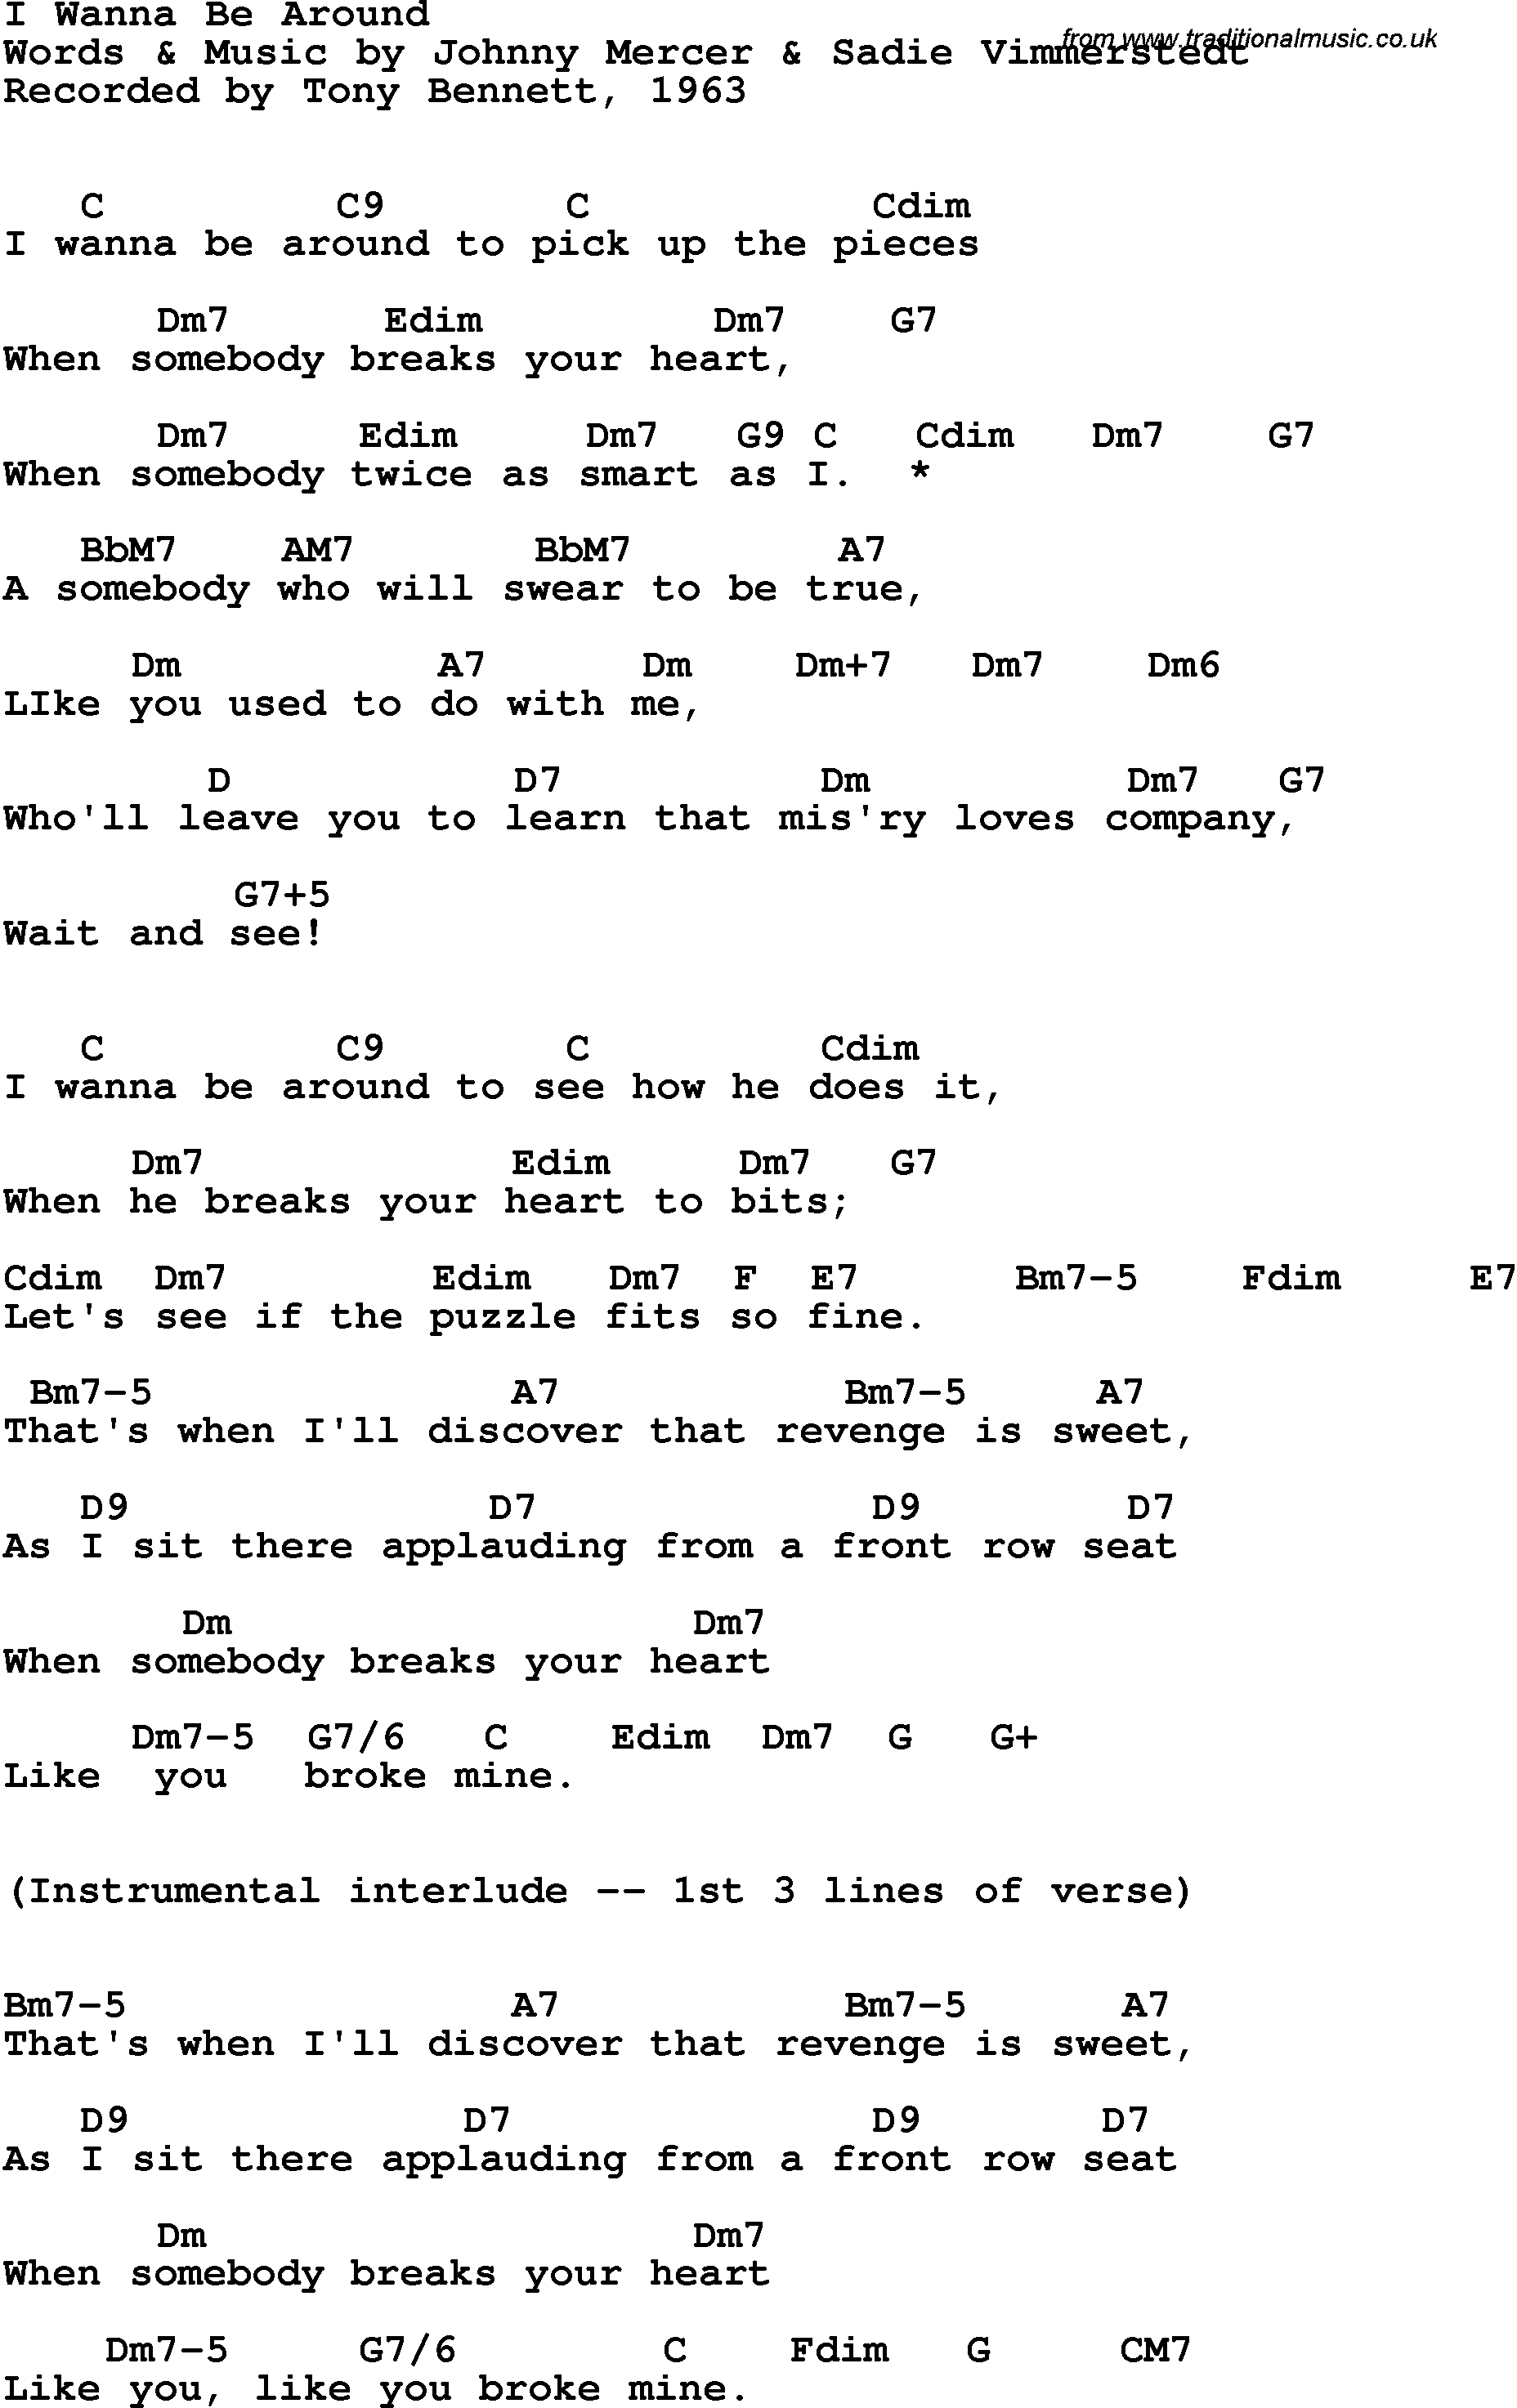 Song Lyrics With Guitar Chords For I Wanna Be Around Tony Bennett